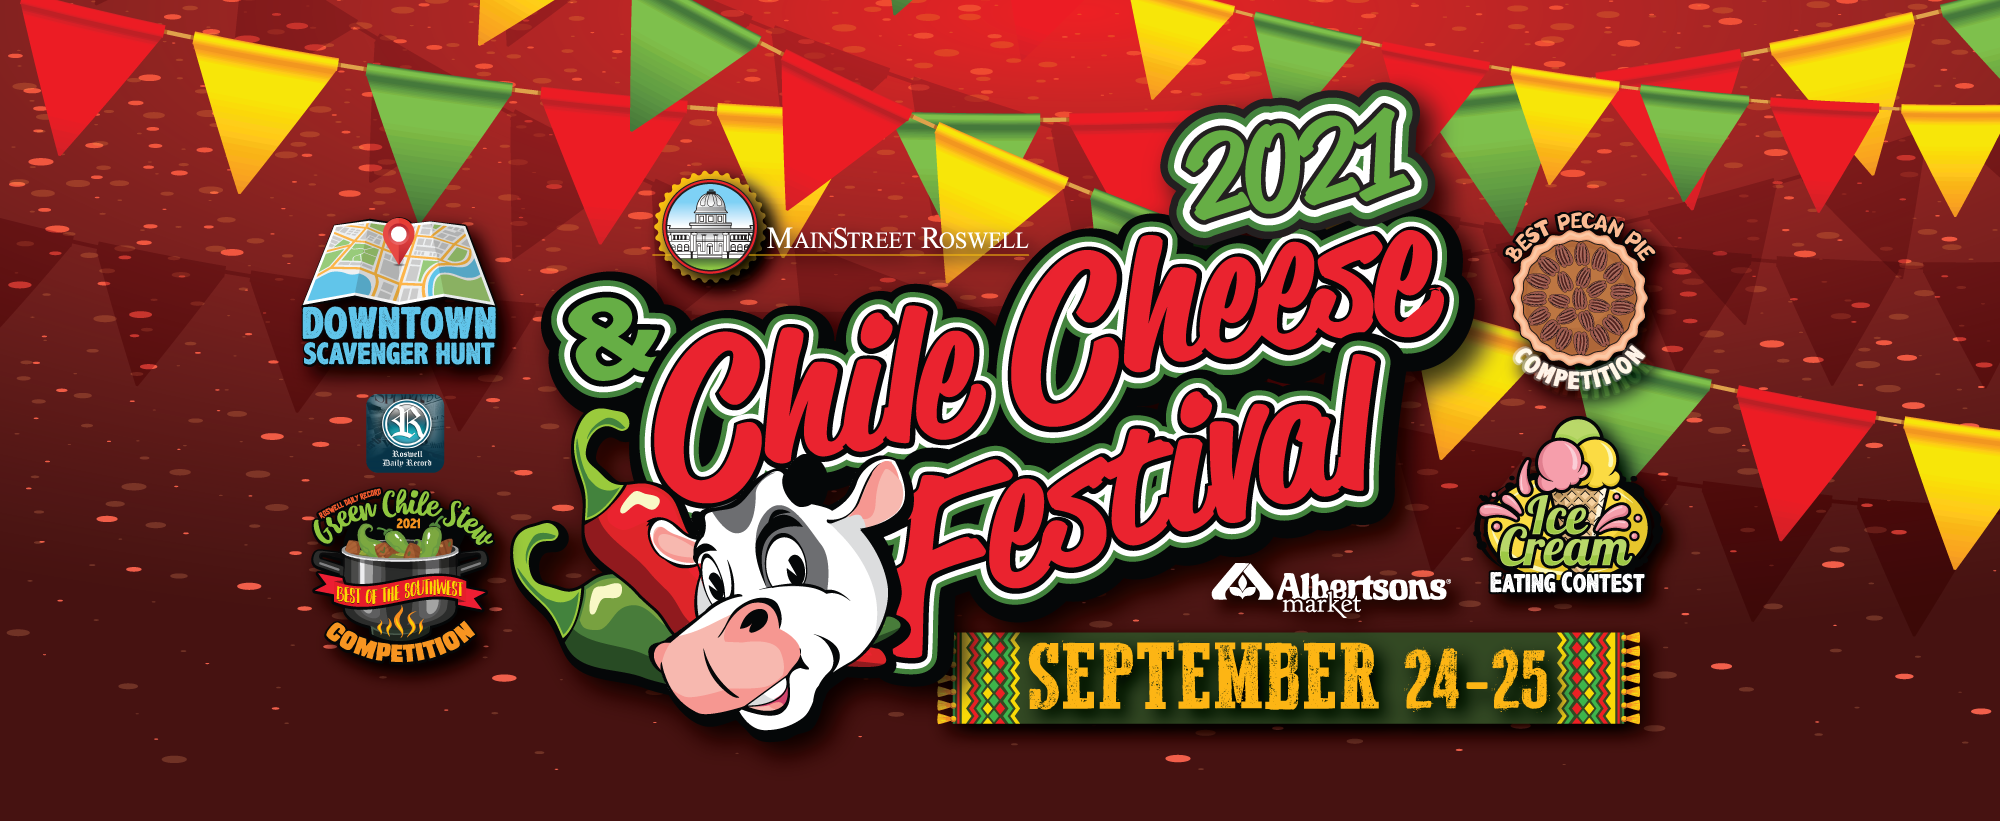 Chile Cheese Festival